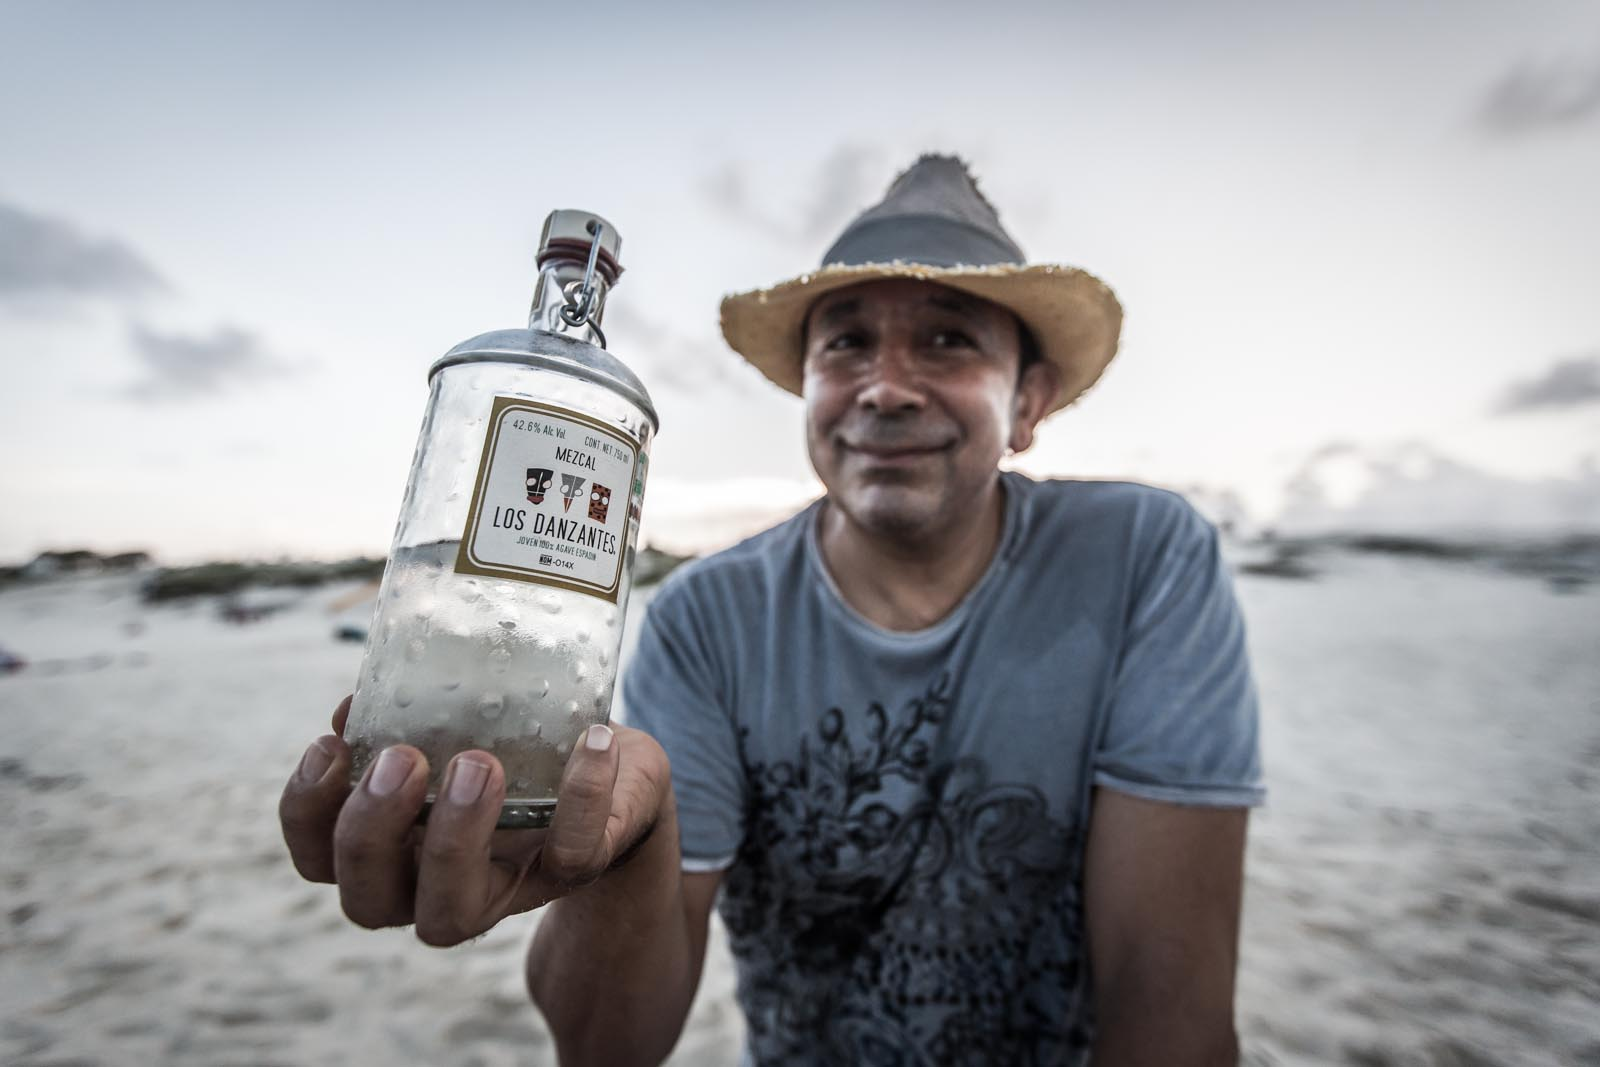 The Dancers mezcal will make you dance! Thanks Leon, for sharing with us your city, home, beach, art, and more.